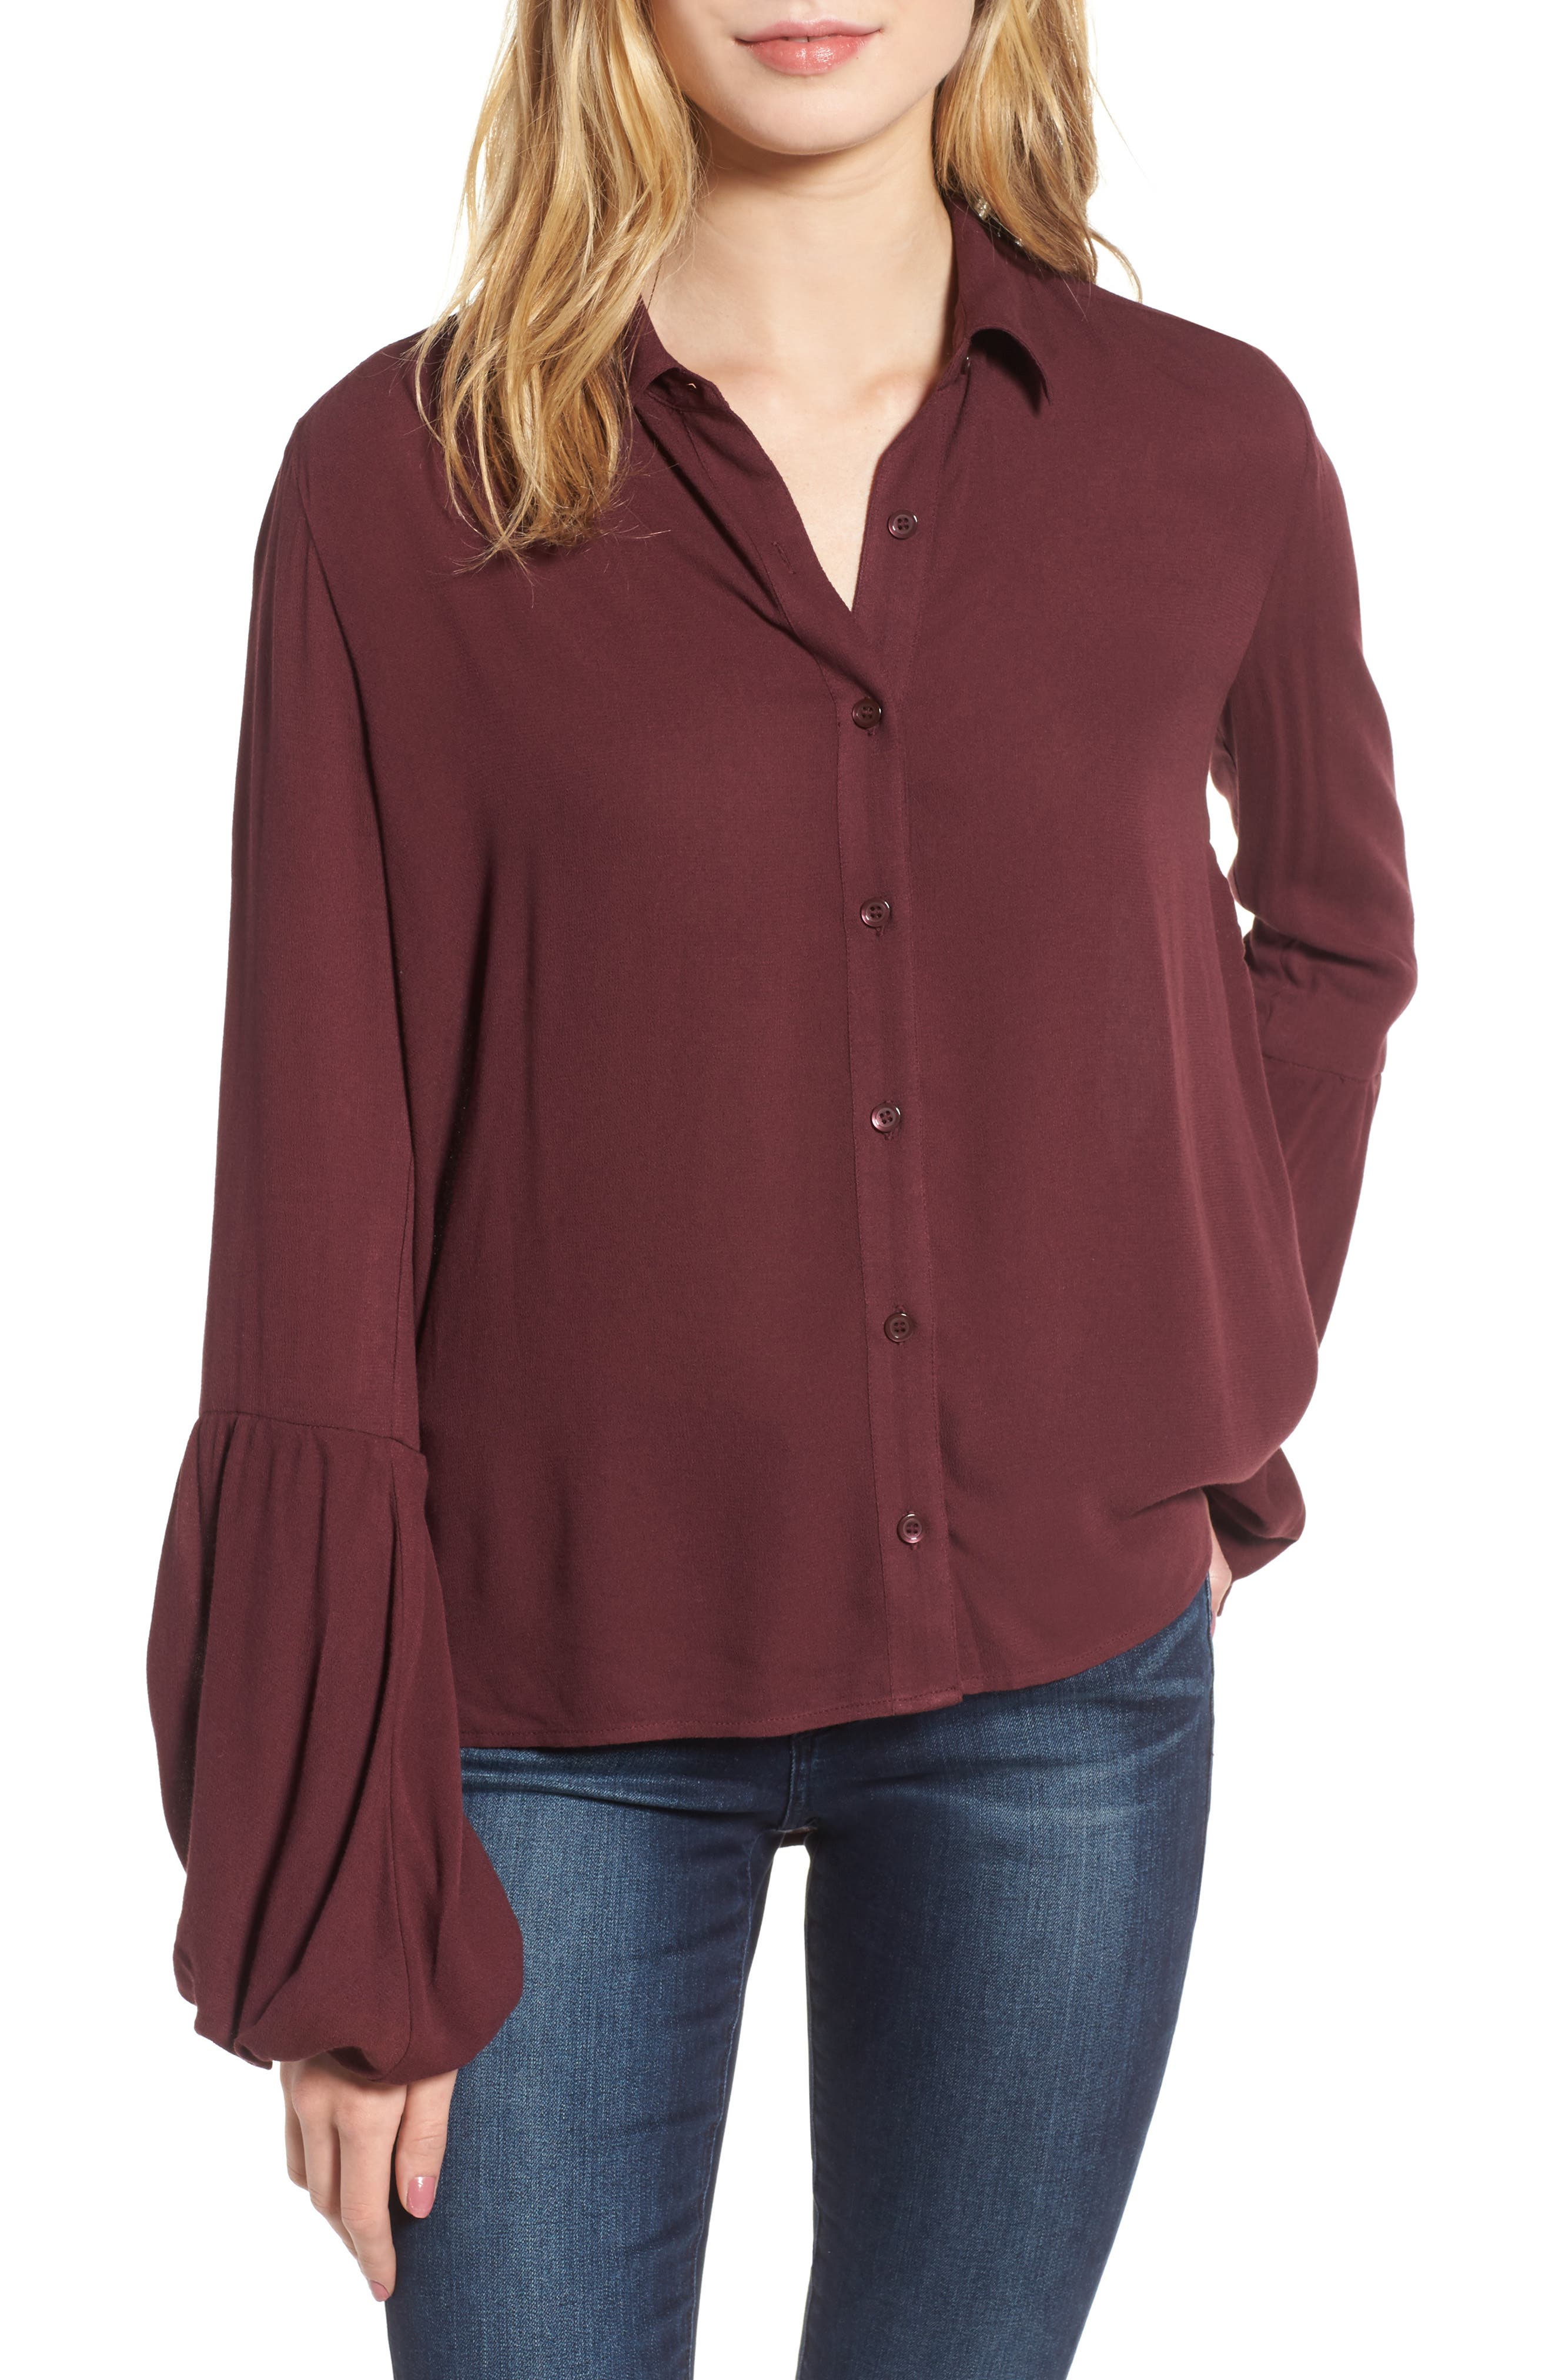 Balloon Sleeve Top,                         Main,                         color, Burgundy Royale